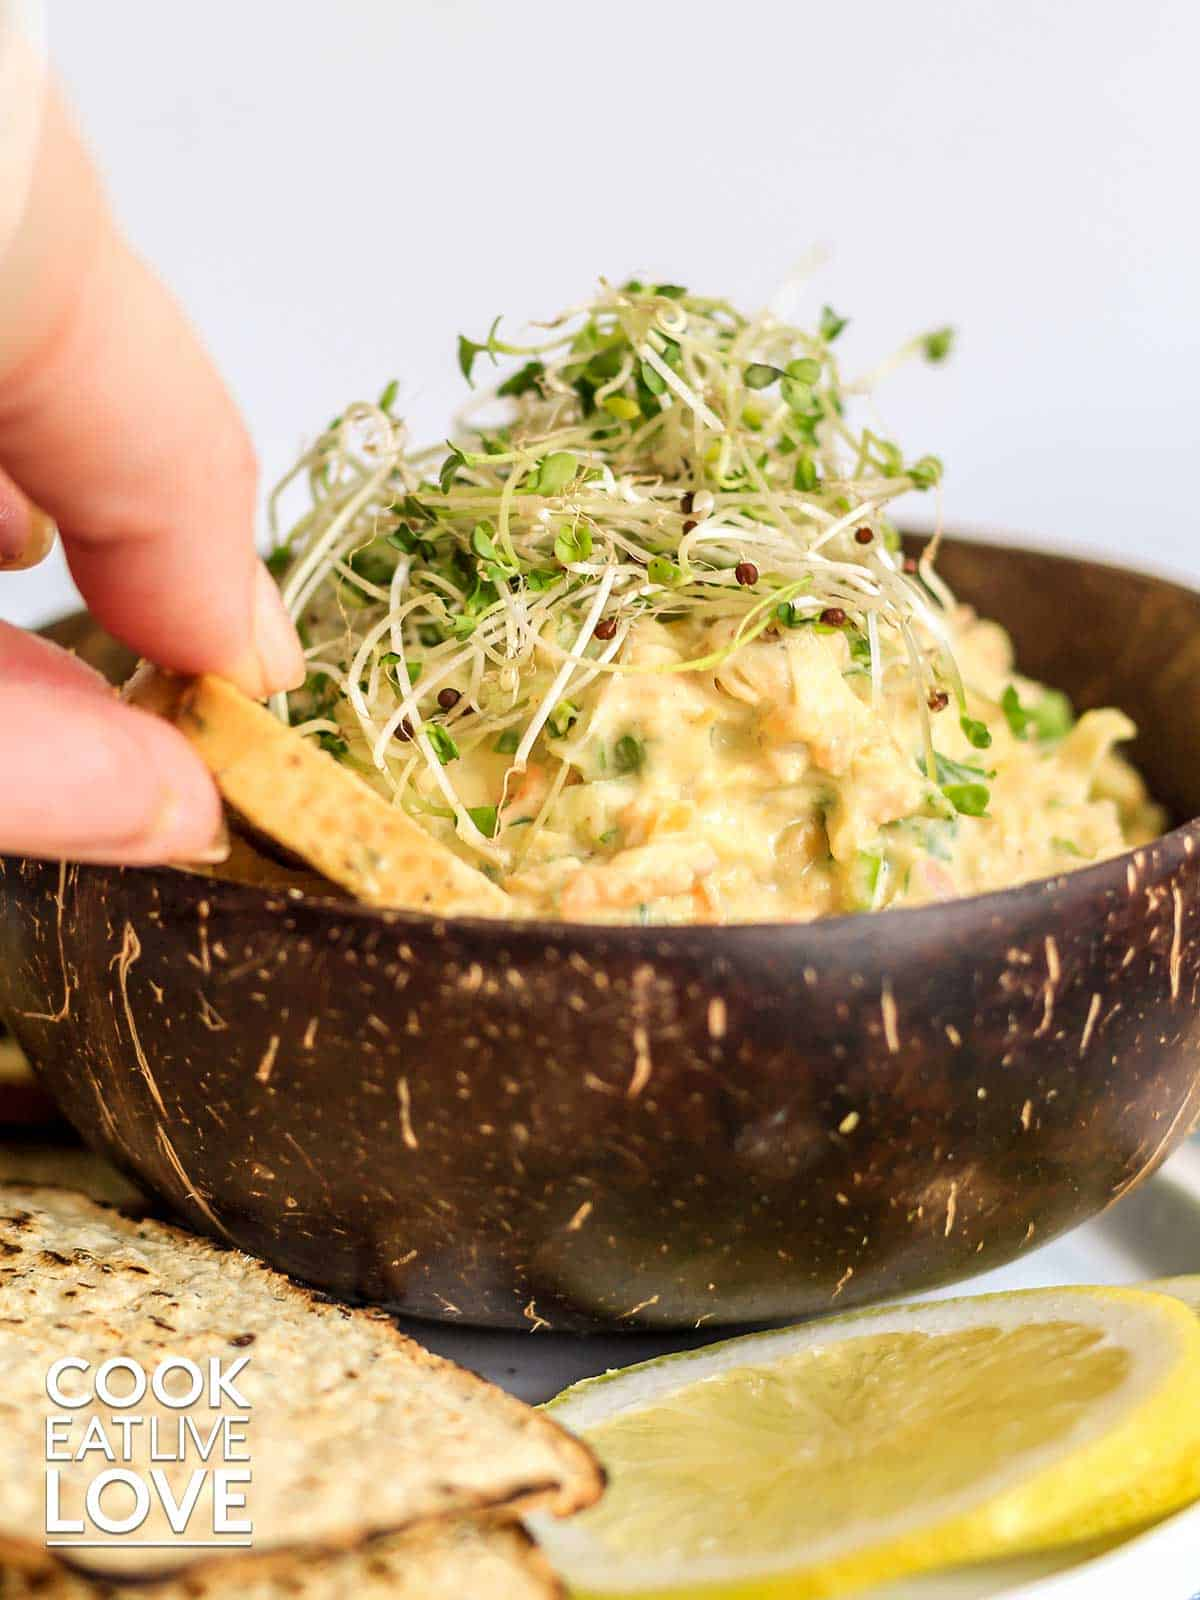 Fingers dipping a cracker into a bowl of mashed chickpea salad